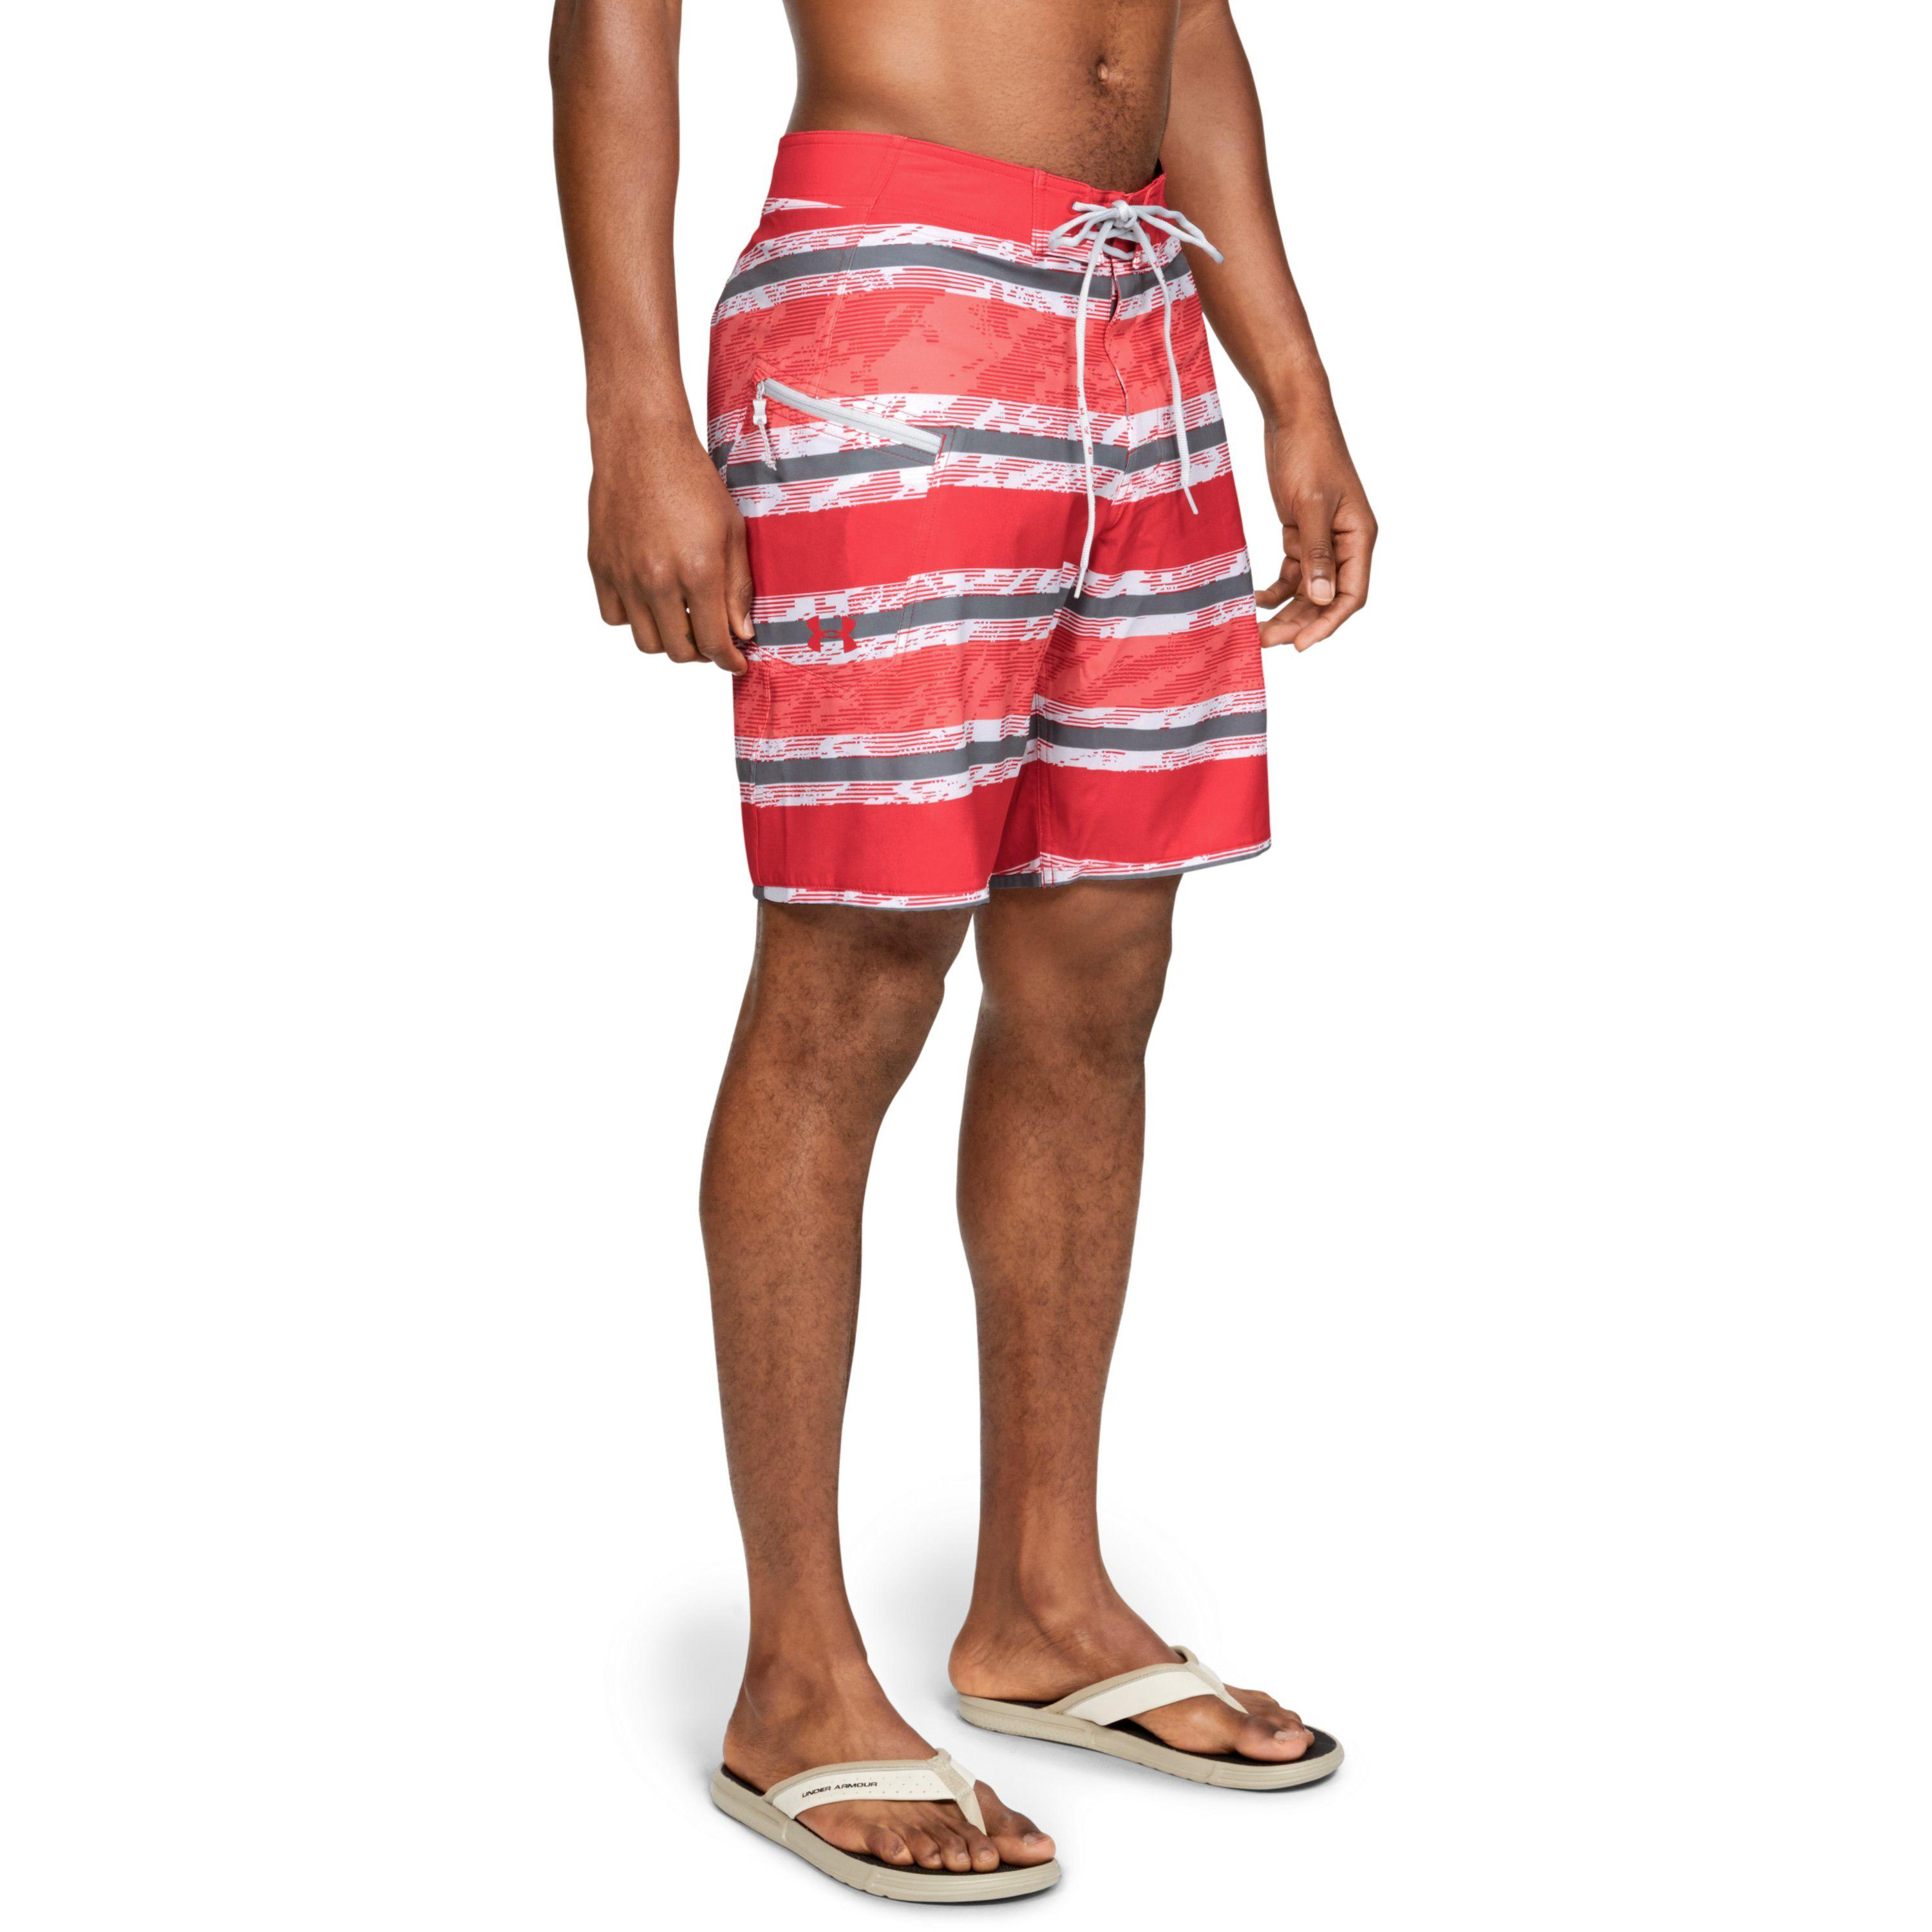 c73ae9917ebc5 Lyst - Under Armour Men's Ua Tide Chaser Boardshorts in Red for Men